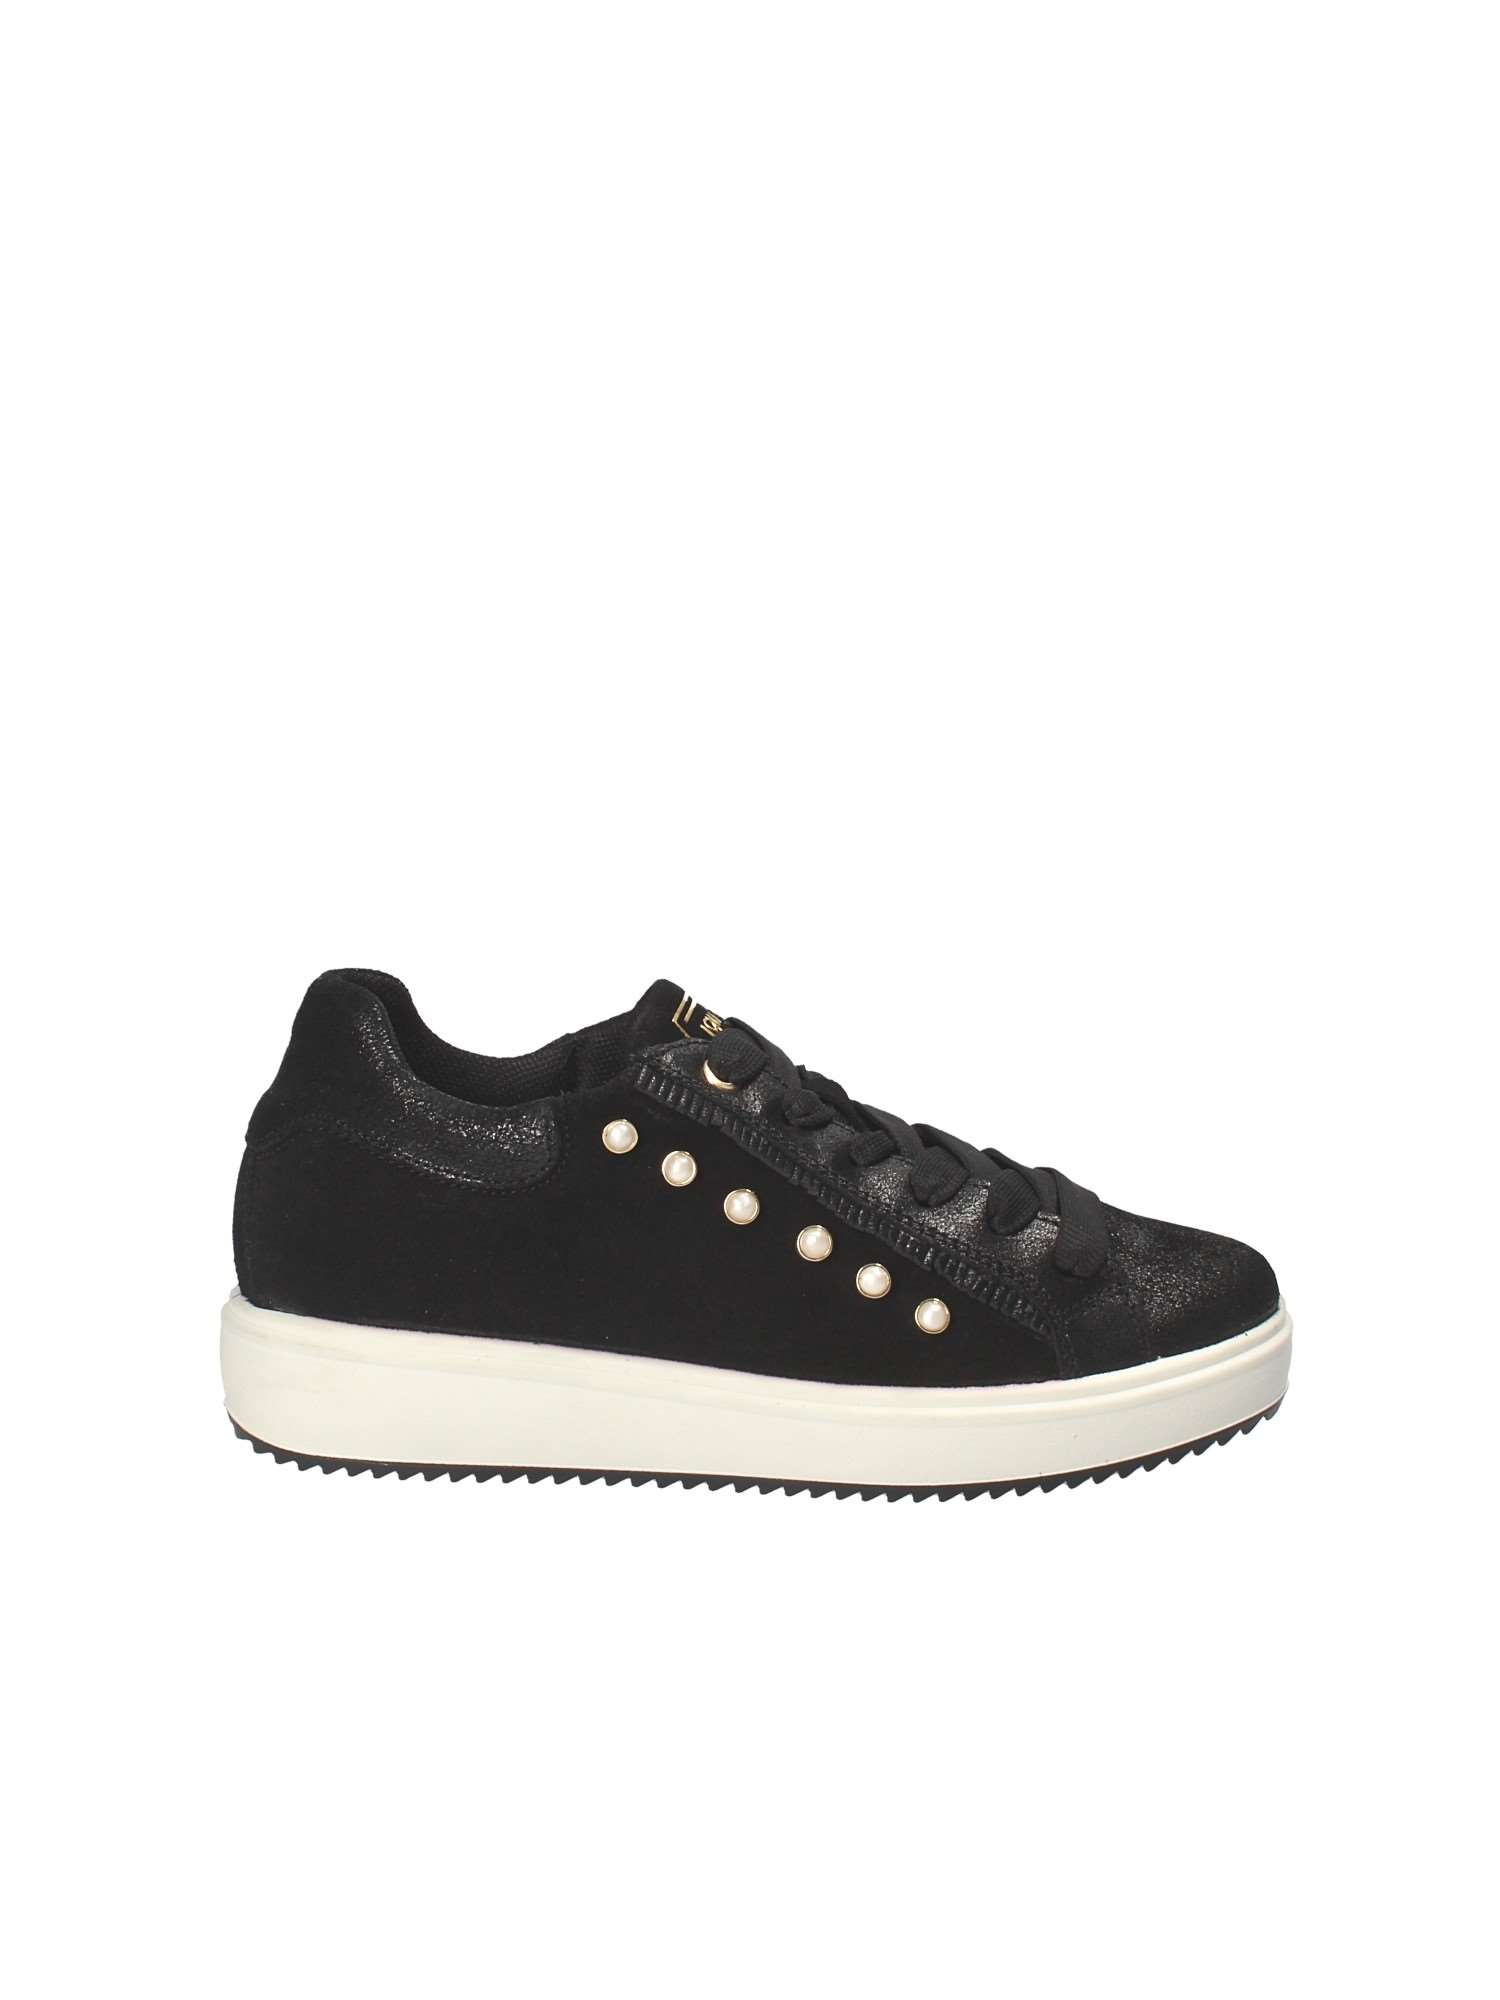 SCARPE SNEAKERS DONNA IGIECO IGI E CO 2153900 PELLE NERO ORIGINAL AI NEW